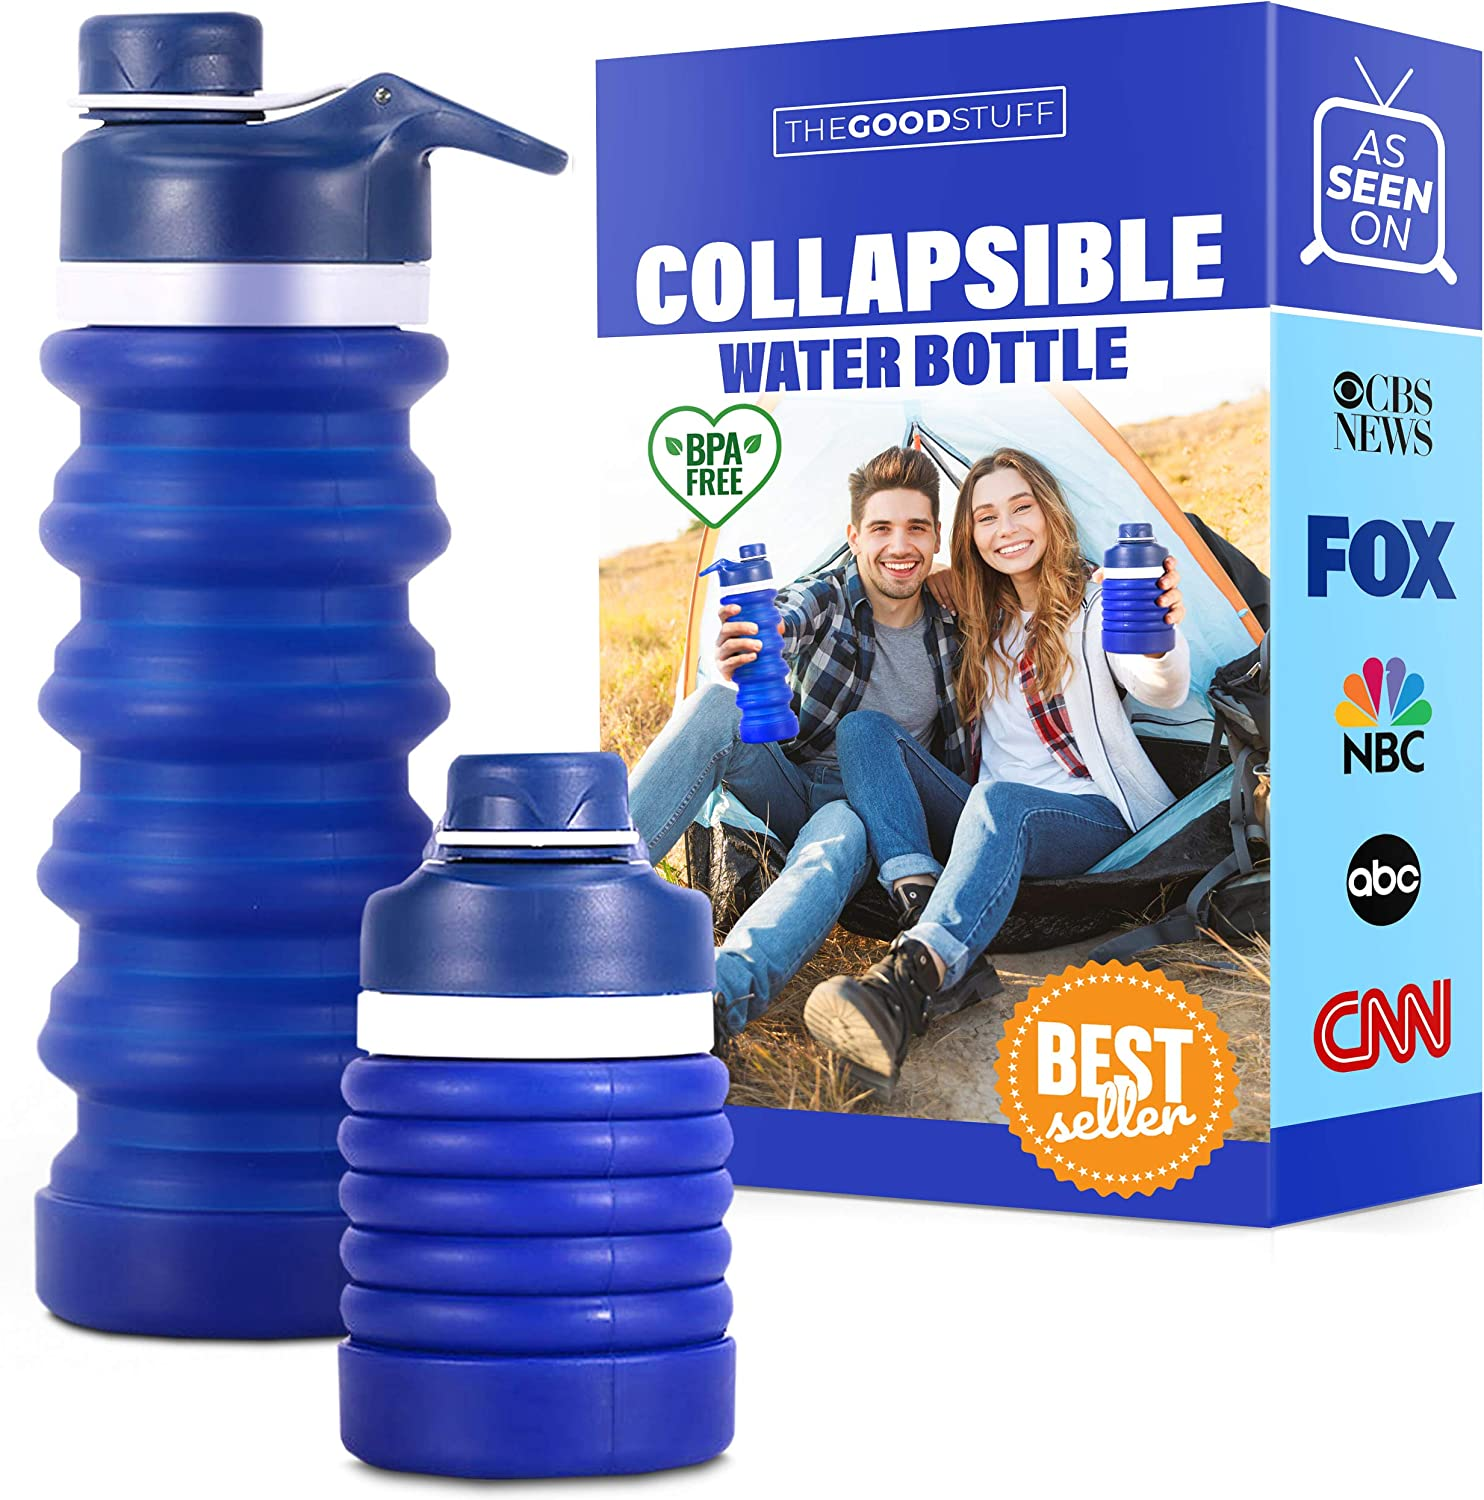 Collapsible Water Bottle for Travel: Space Saving, Lightweight, Flexible Water Bottle - BPA Free Silicone Bottle, Soft Water Bottle, Portable Foldable Water Bottle BPA Free